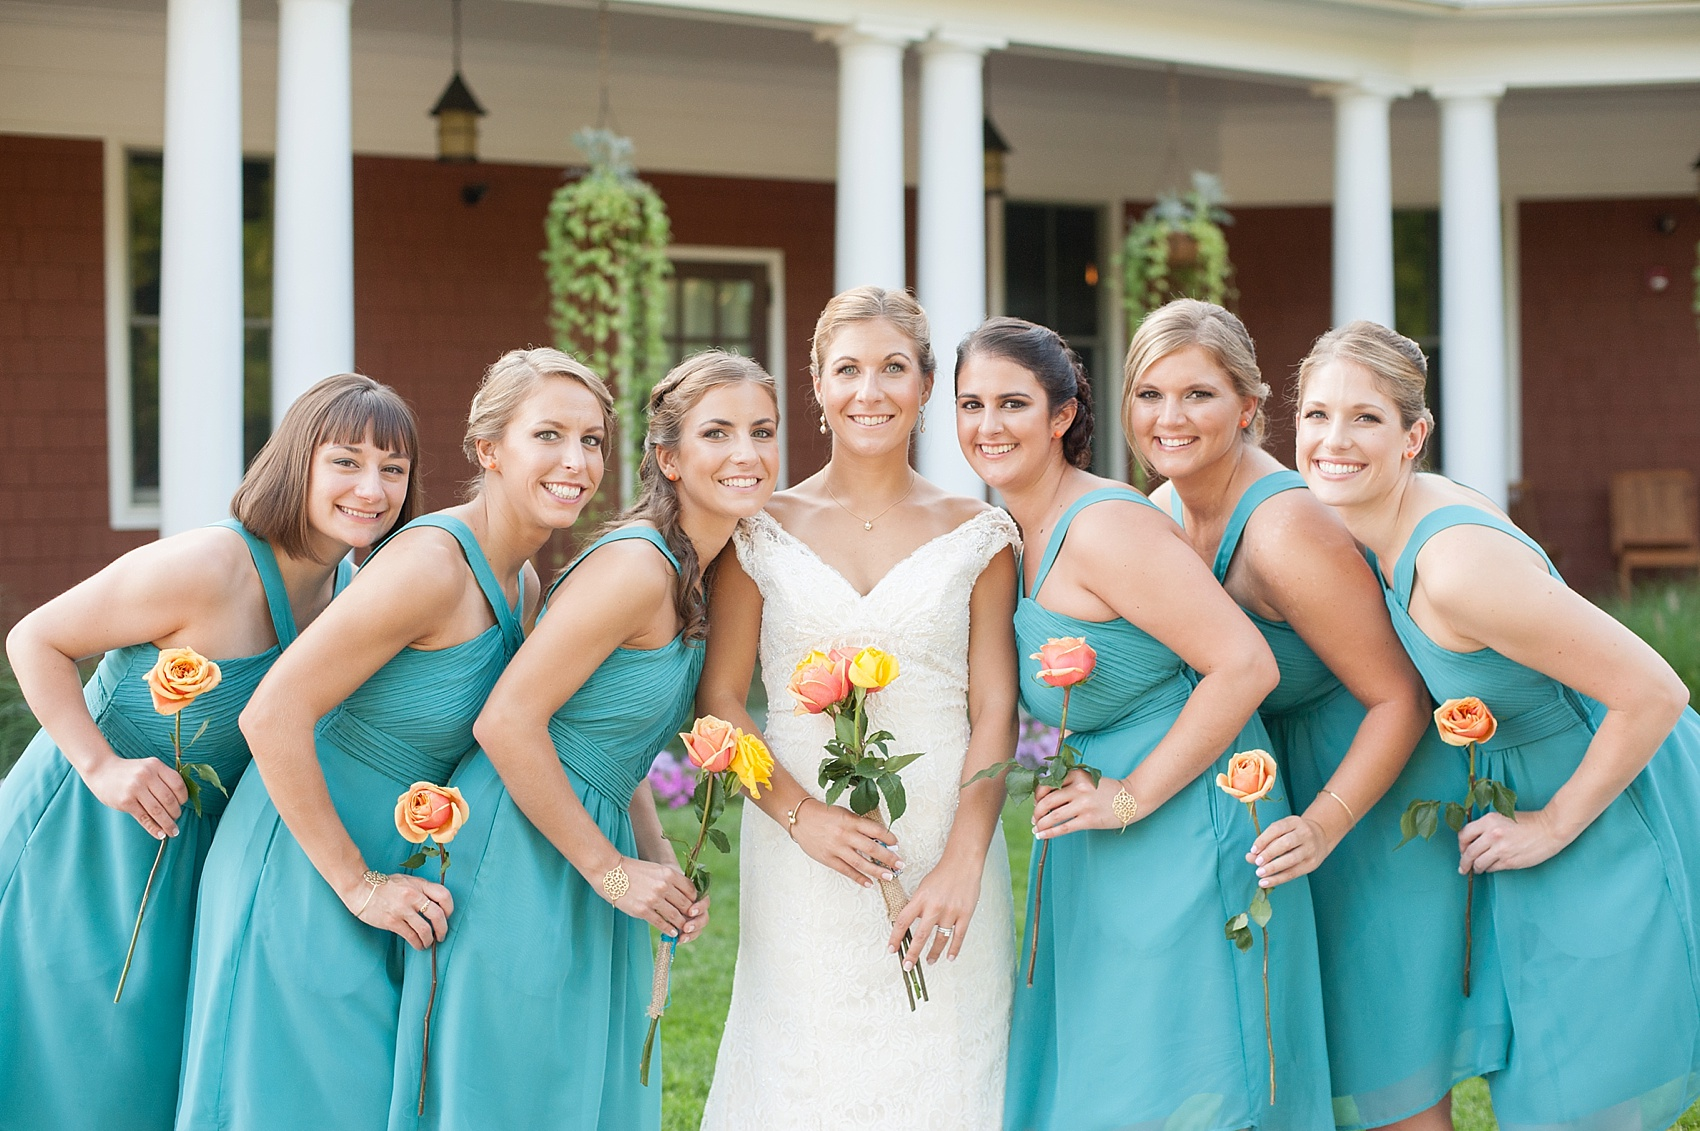 Wedding party in teal dresses and single stem roses for a Hollow Brook Golf Club wedding in New York. Photos by Mikkel Paige Photography.